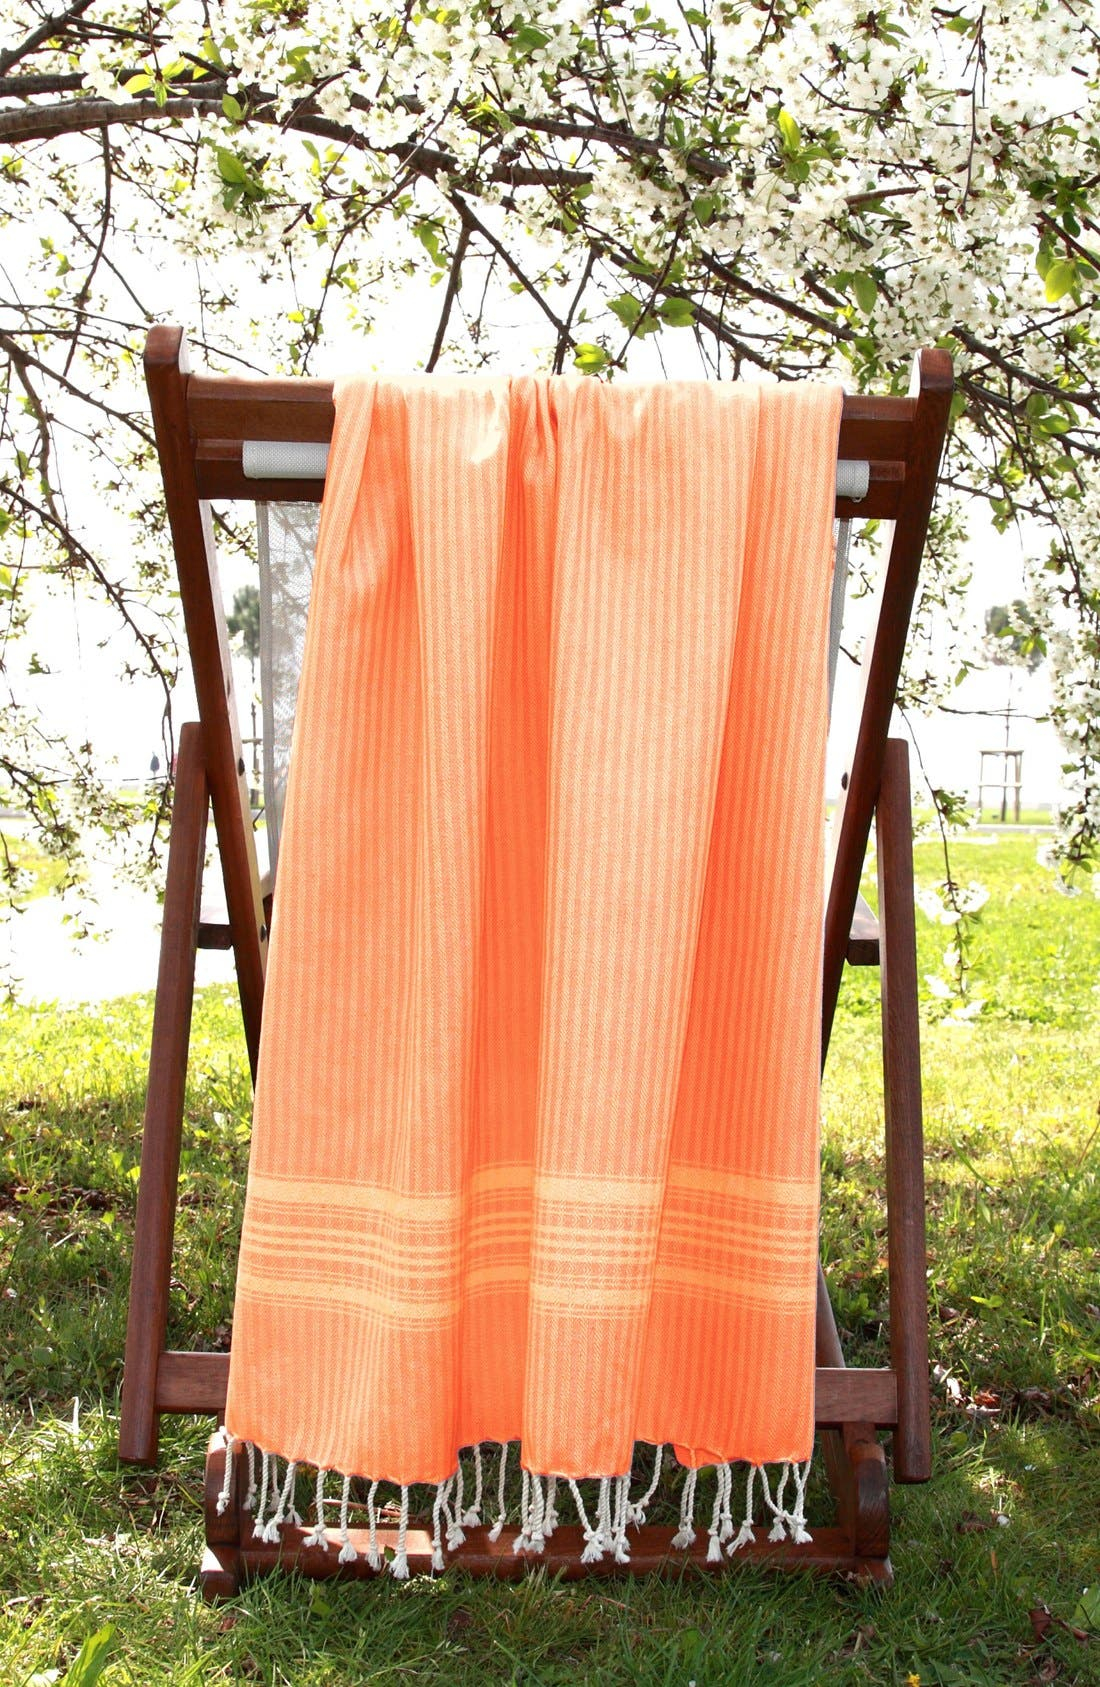 Alternate Image 1 Selected - Linum Home Textiles 'Luxe Herringbone' Turkish Pestemal Towel